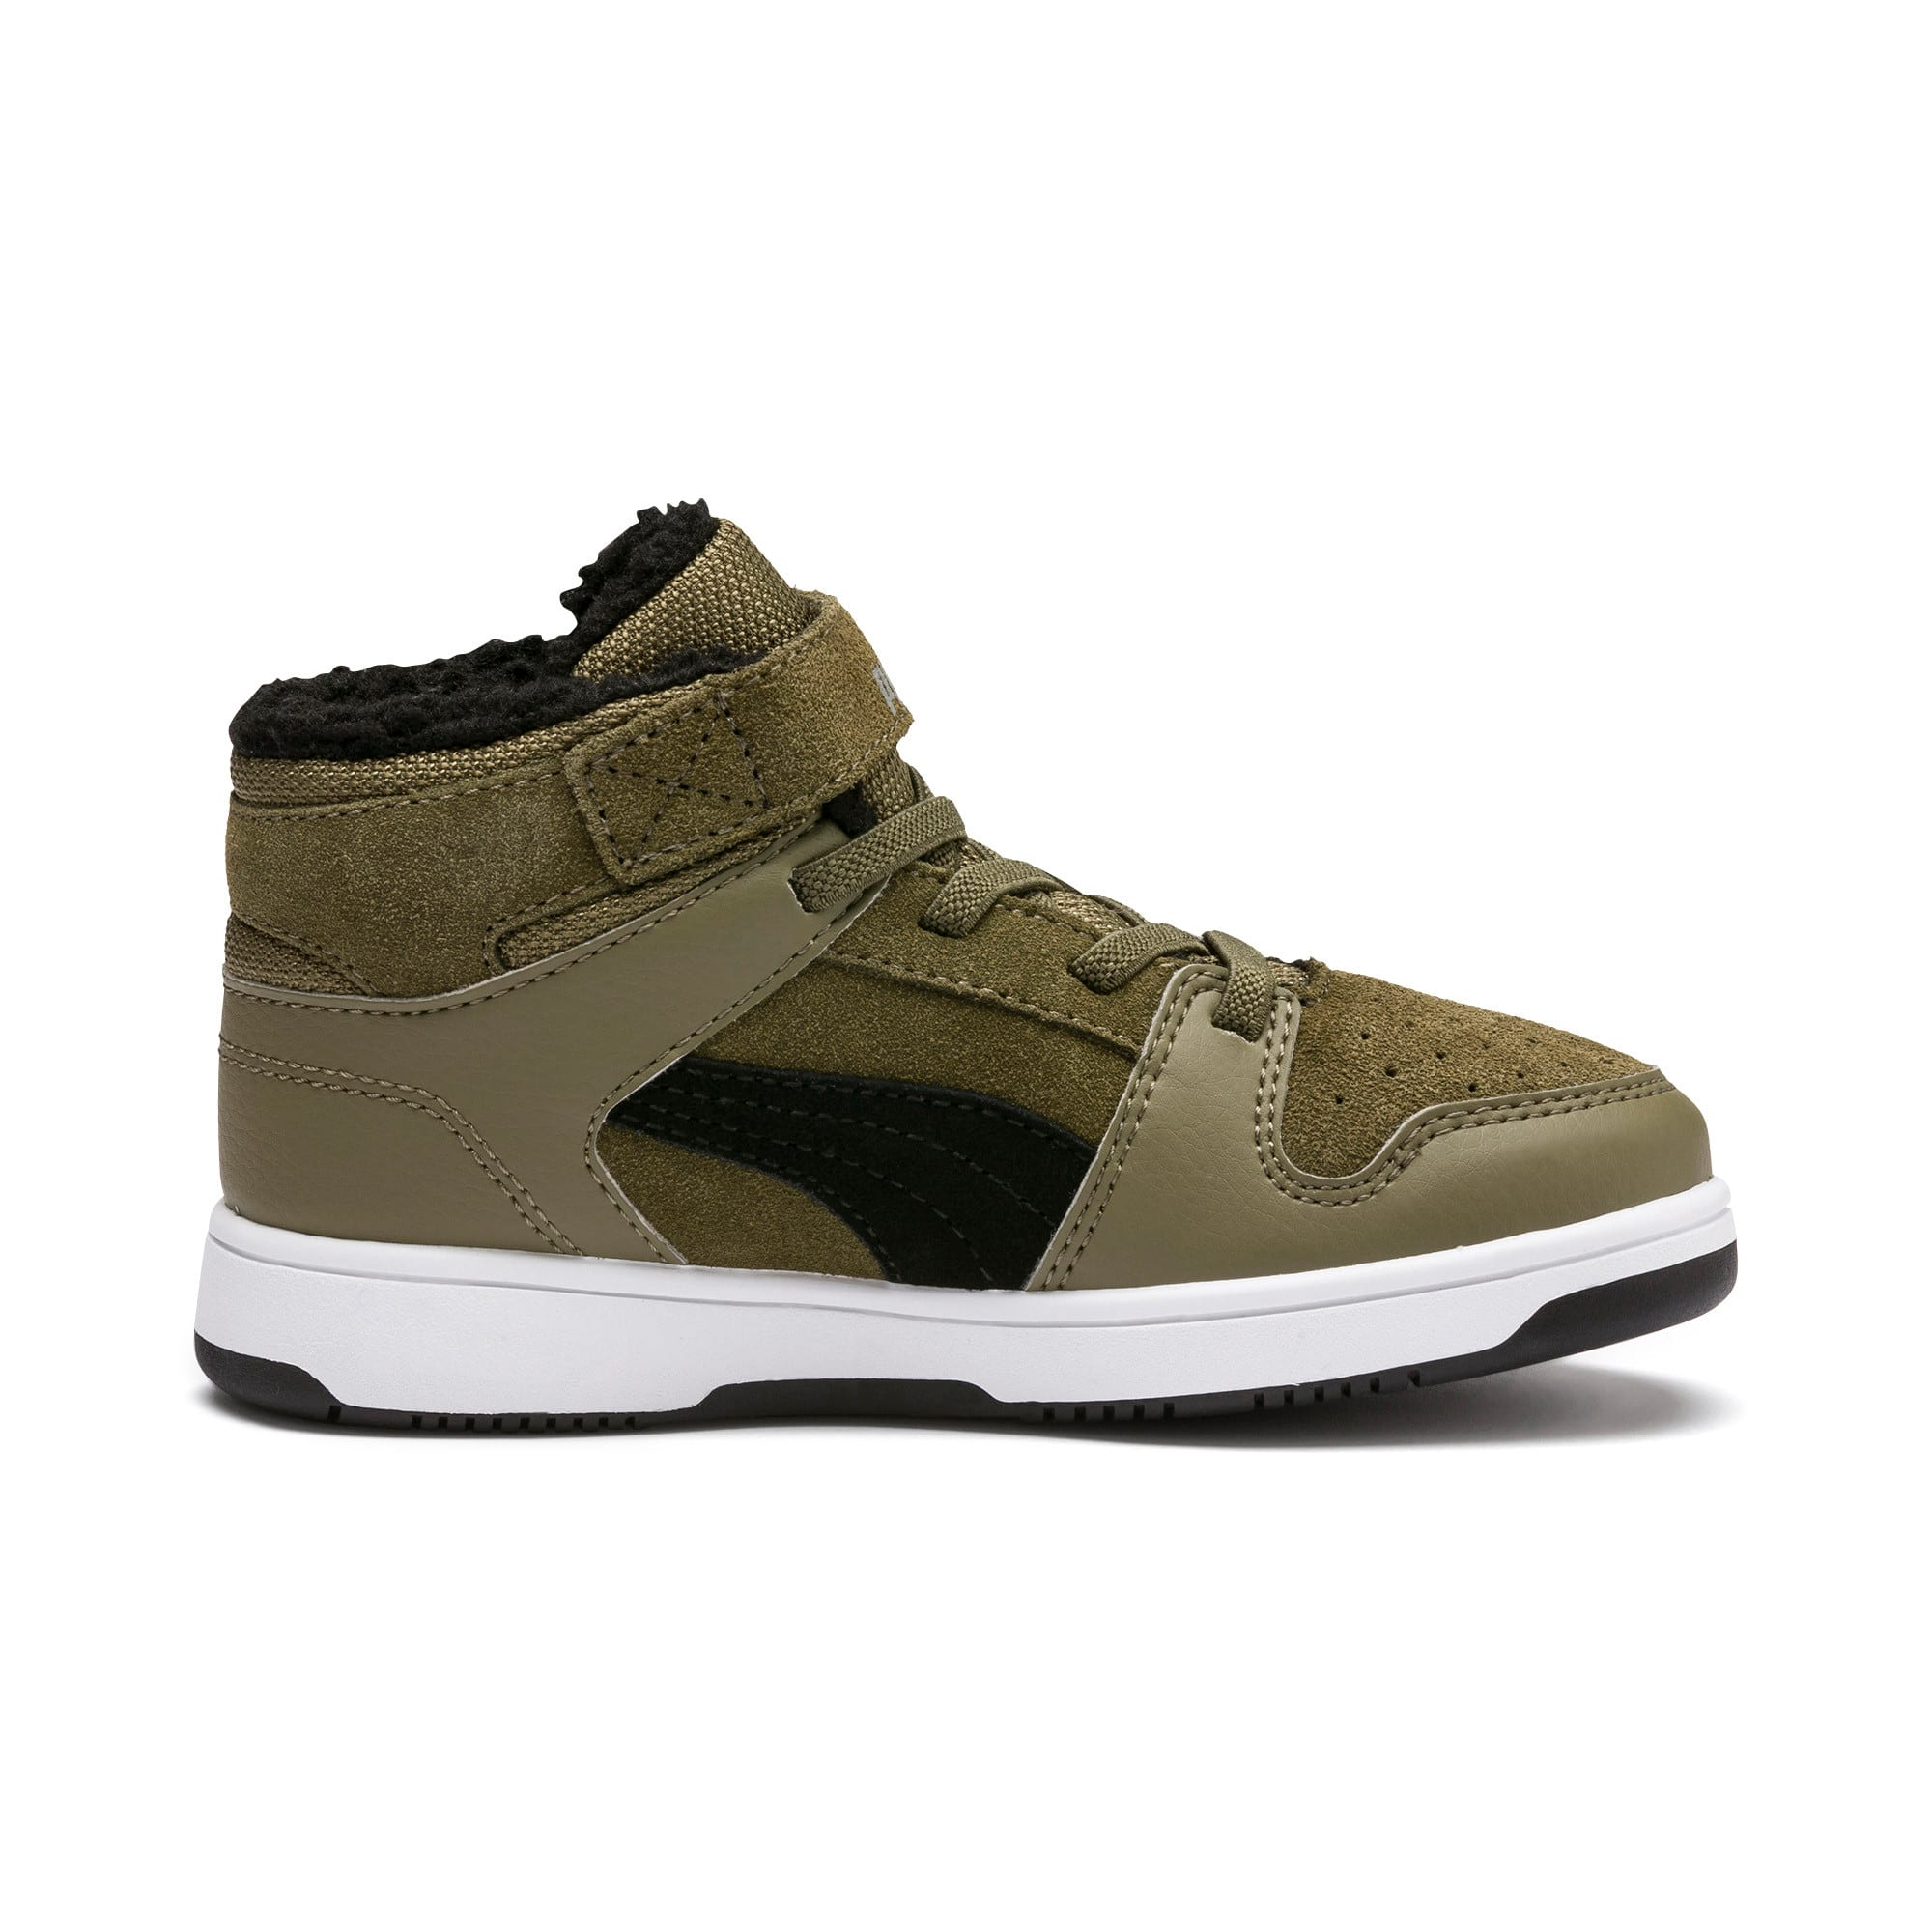 Thumbnail 5 of Rebound Lay-Up Fur V Kids' Trainers, B Olive-Black-Limestone-Wht, medium